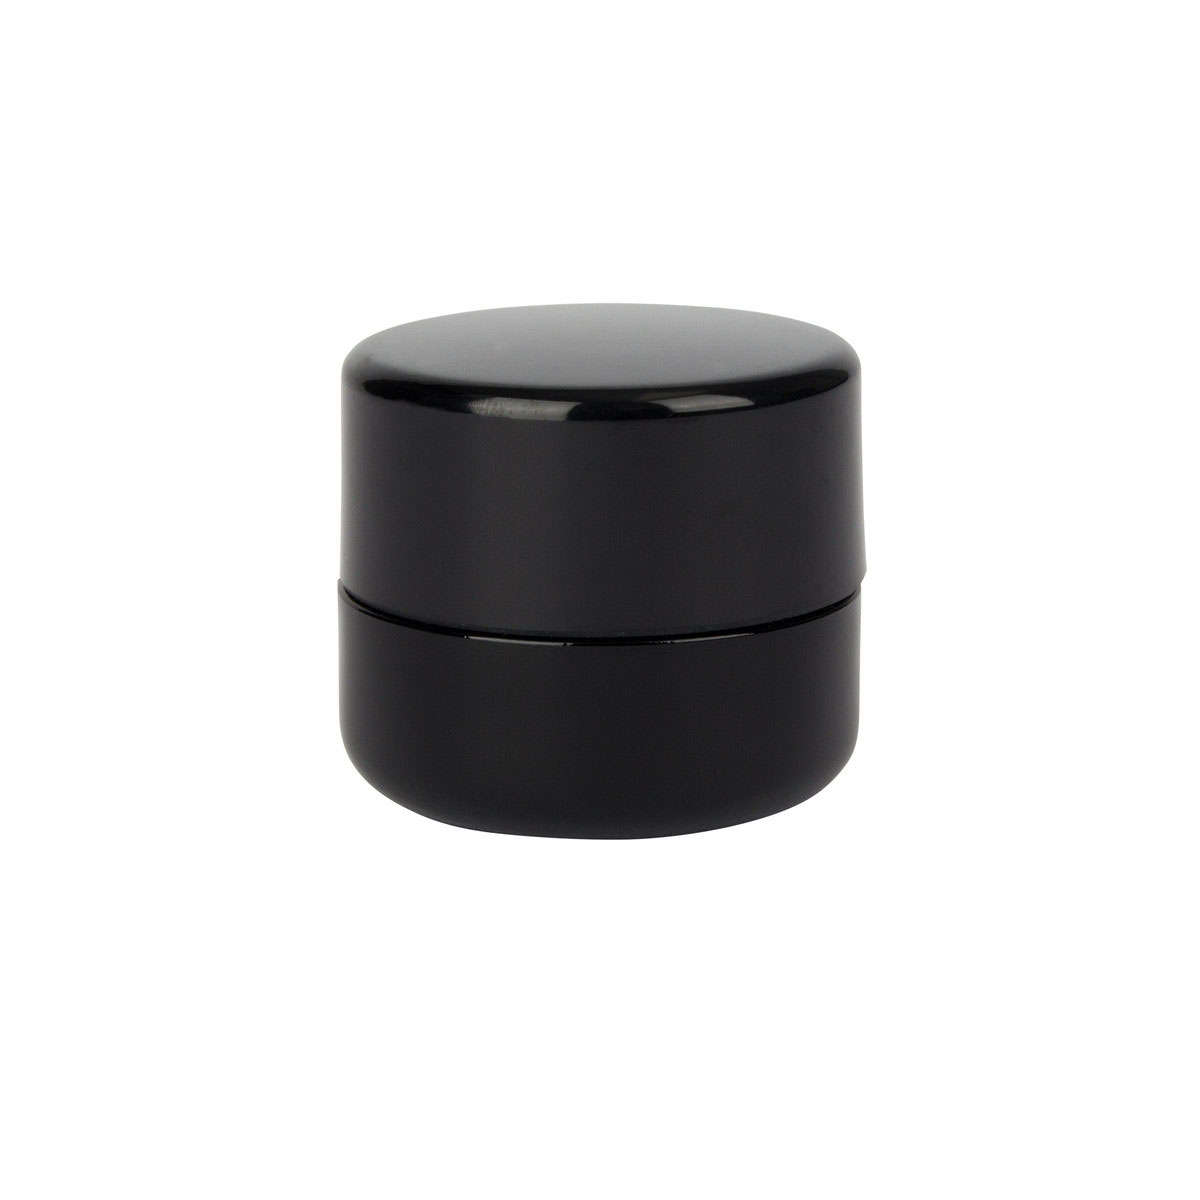 5ml Black Uv Glass Child Resistant Concentrate Container (150 Qty.)